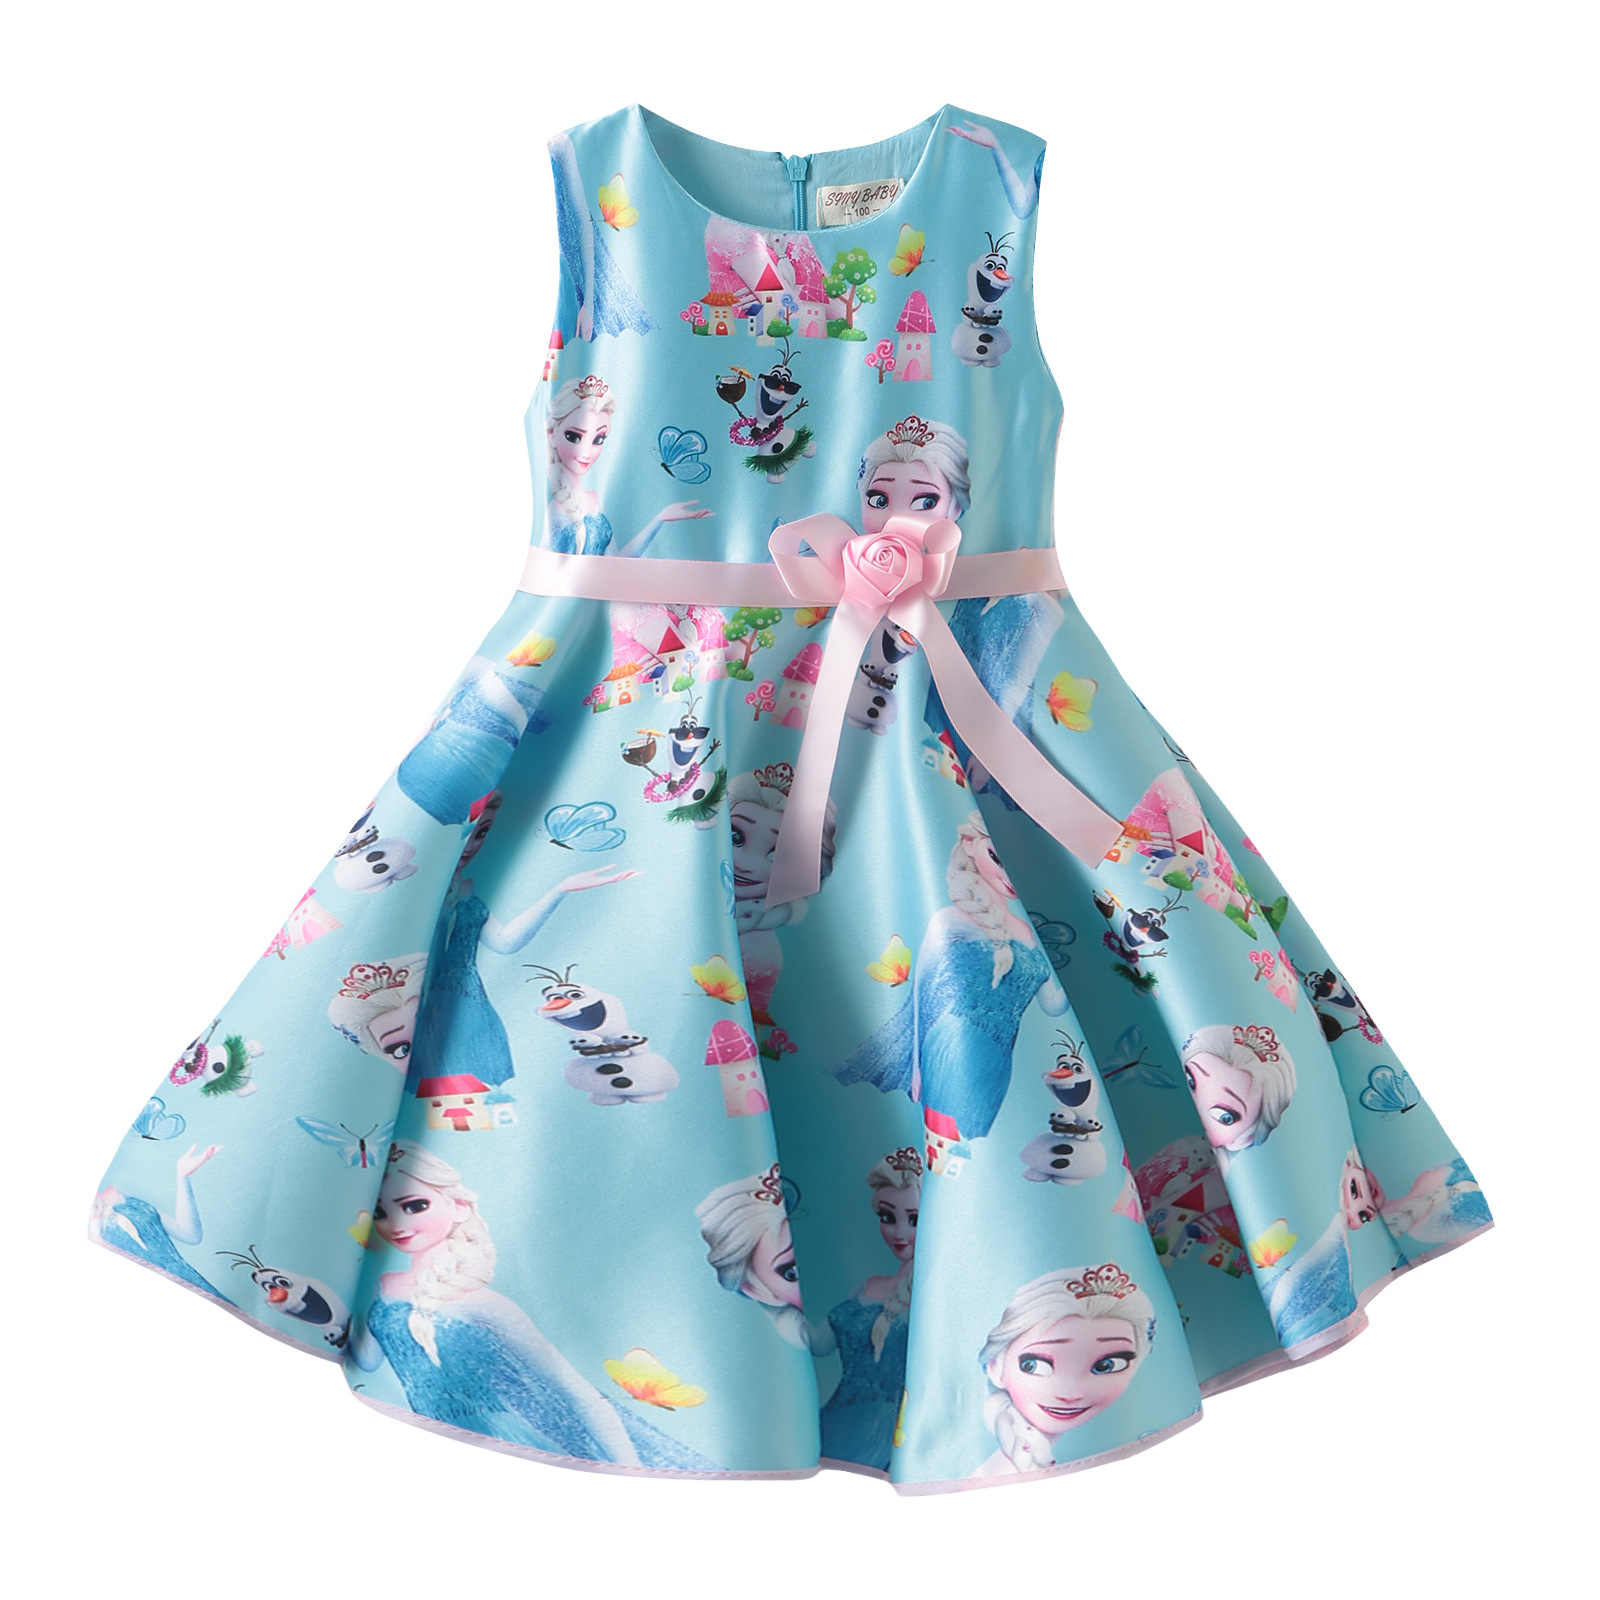 2018 new girls dress contrast color belt with flowers cute Sophia little princess print